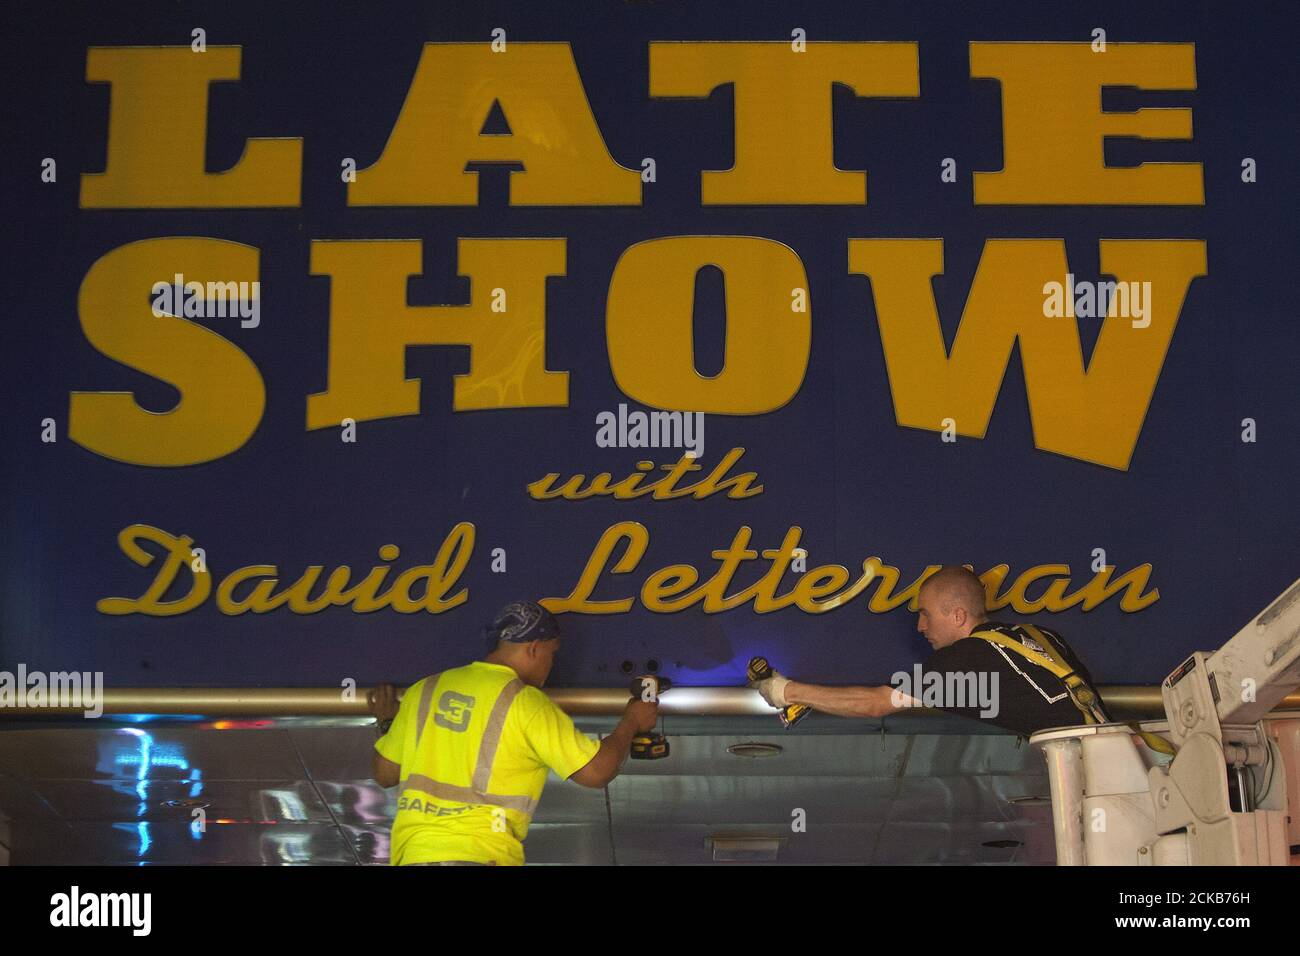 """Workers remove the marquee from the Ed Sullivan Theater where """"The Late Show"""" with David Letterman used to tape in the Manhattan borough New York May 27, 2015. The taping and broadcast of the final edition of """"The Late Show"""" was May 20, and workers are now slowly transforming the theater for the show's new host Stephen Colbert which will premiere on September 8, 2015.   REUTERS/Carlo Allegri Stock Photo"""